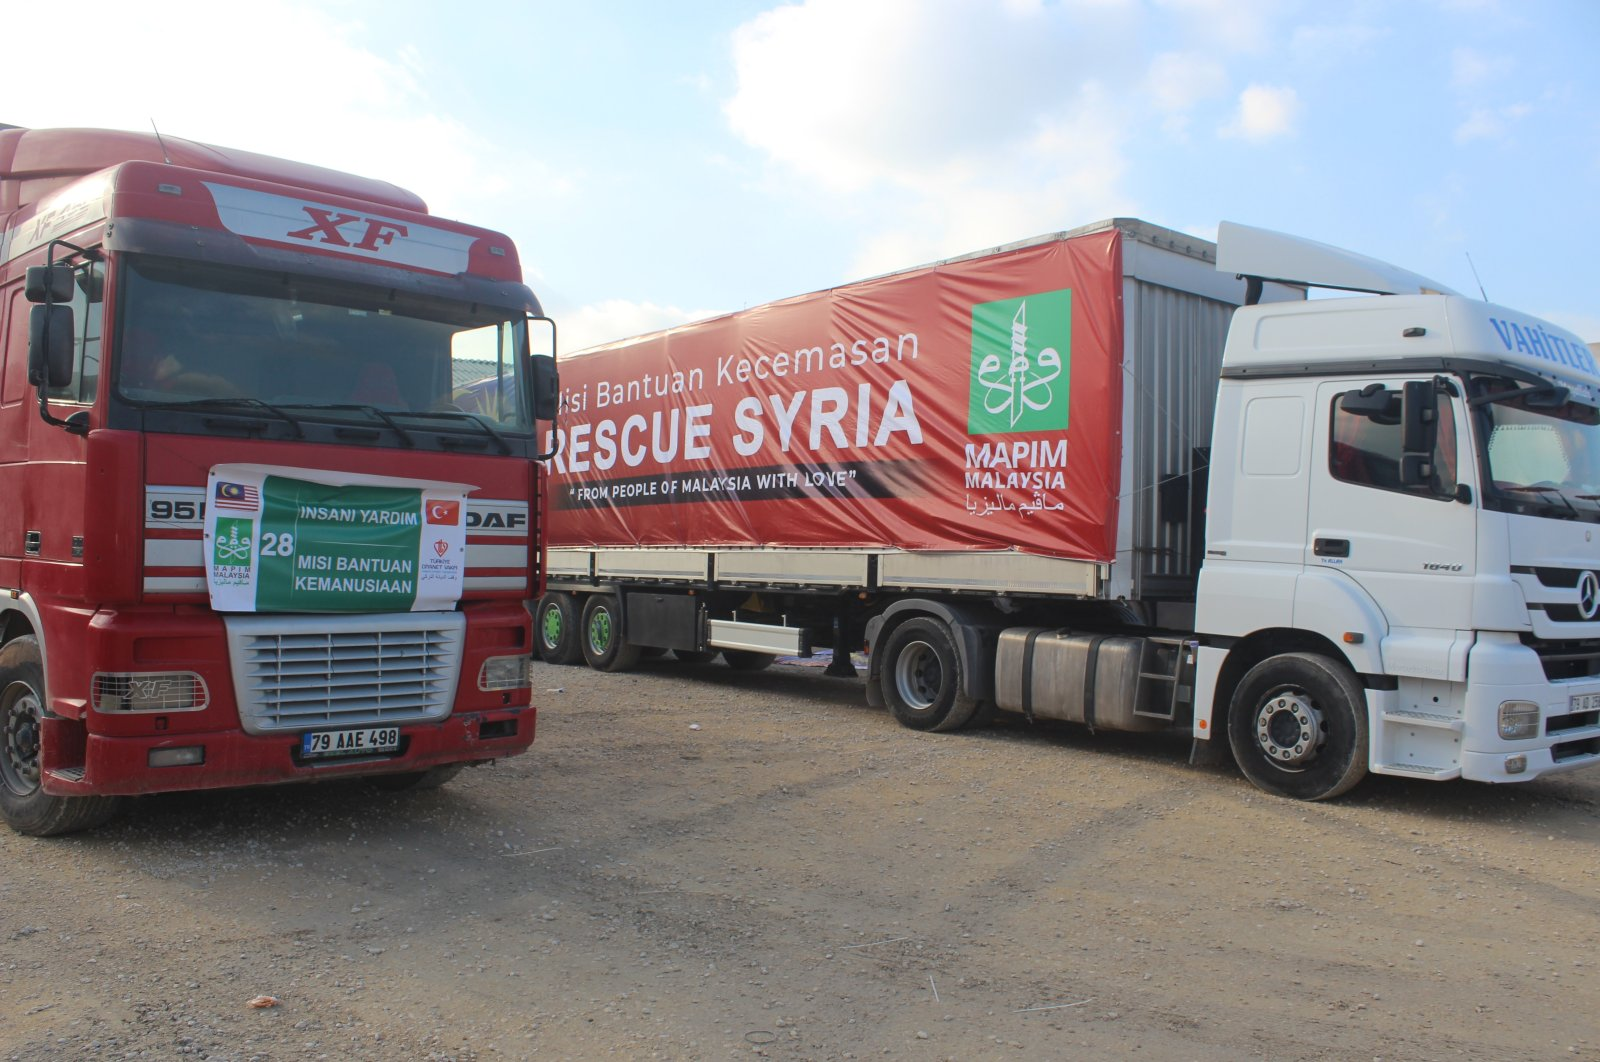 Trucks full of aid sent by the Türkiye Diyanet Foundation (TDV) and the Malaysian Consultative Council for Islamic Organization to Syria, Dec. 9, 2020. (AA Photo)